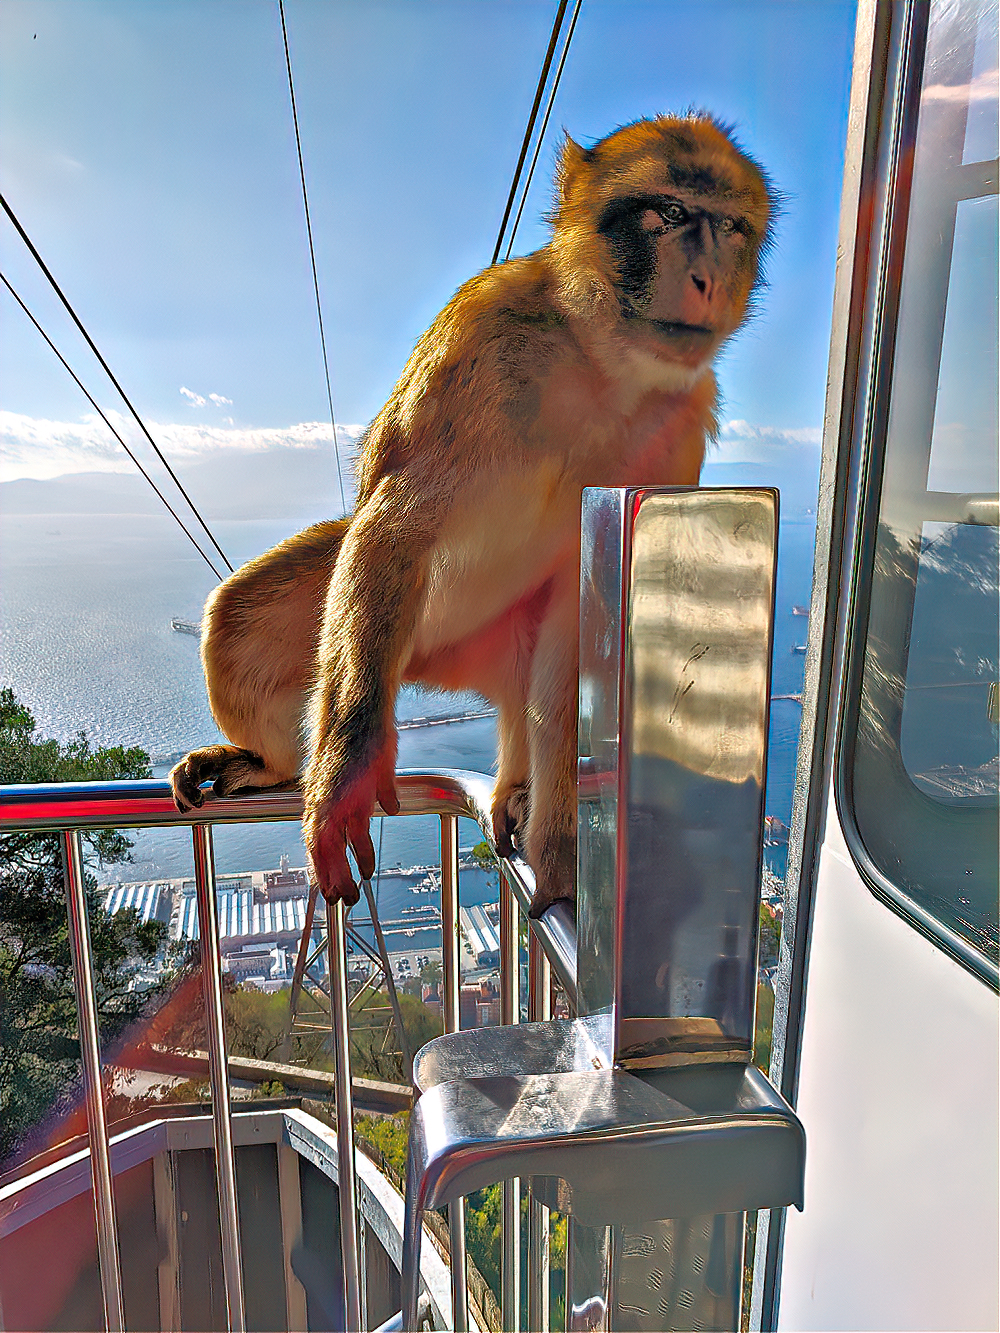 Rock of Gibraltar. Cable car and the monkey/